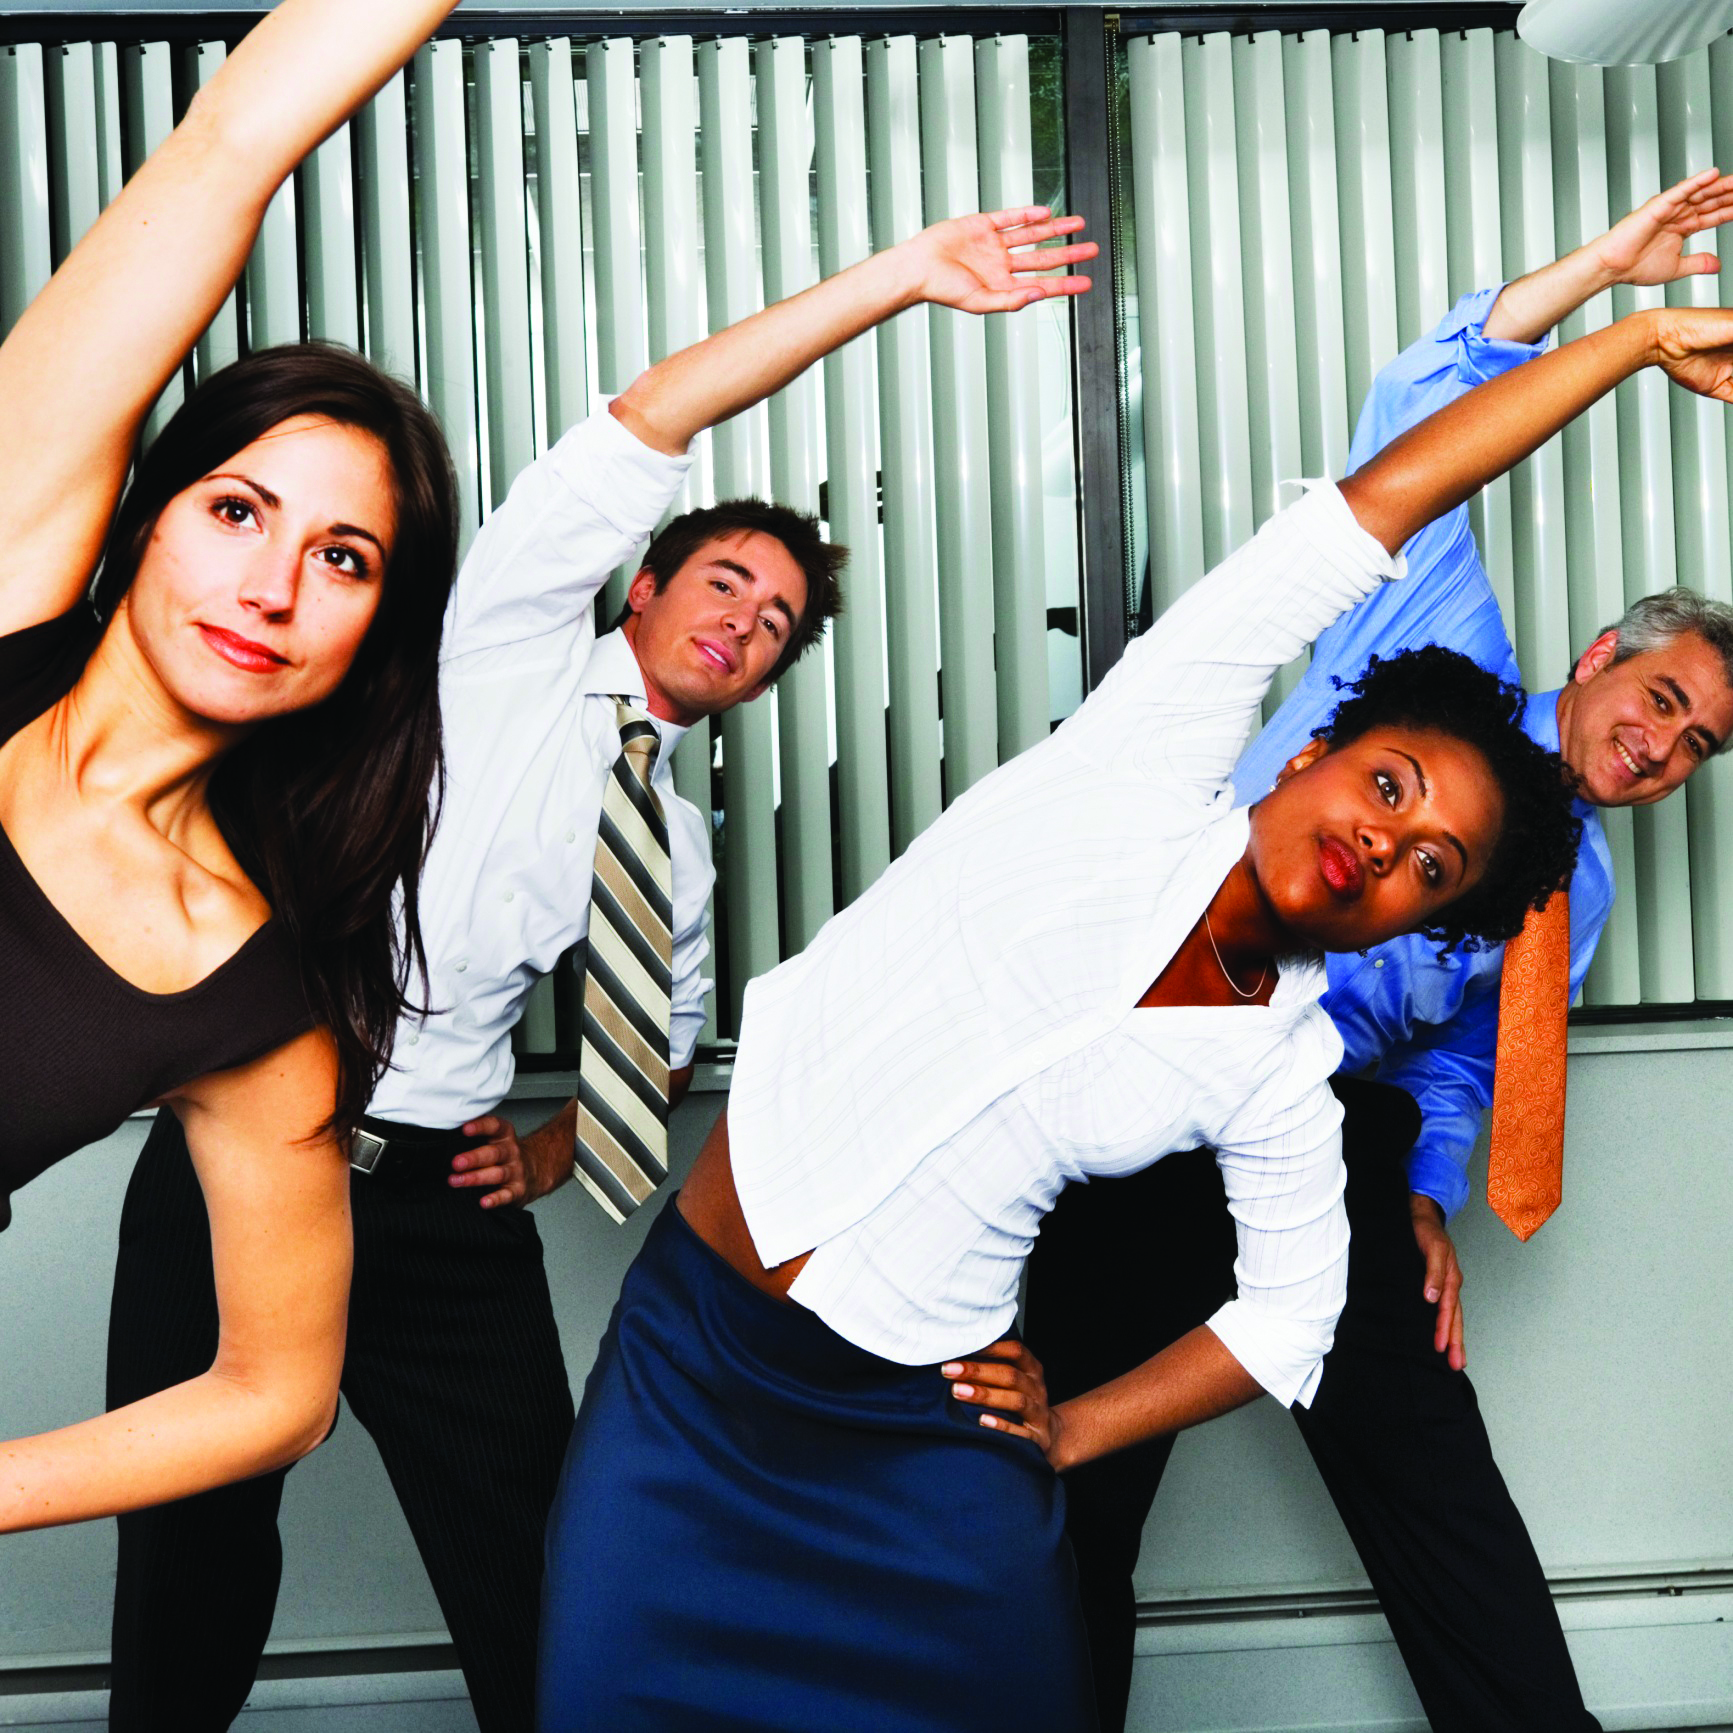 workplace health promotions reaching - HD1200×1200